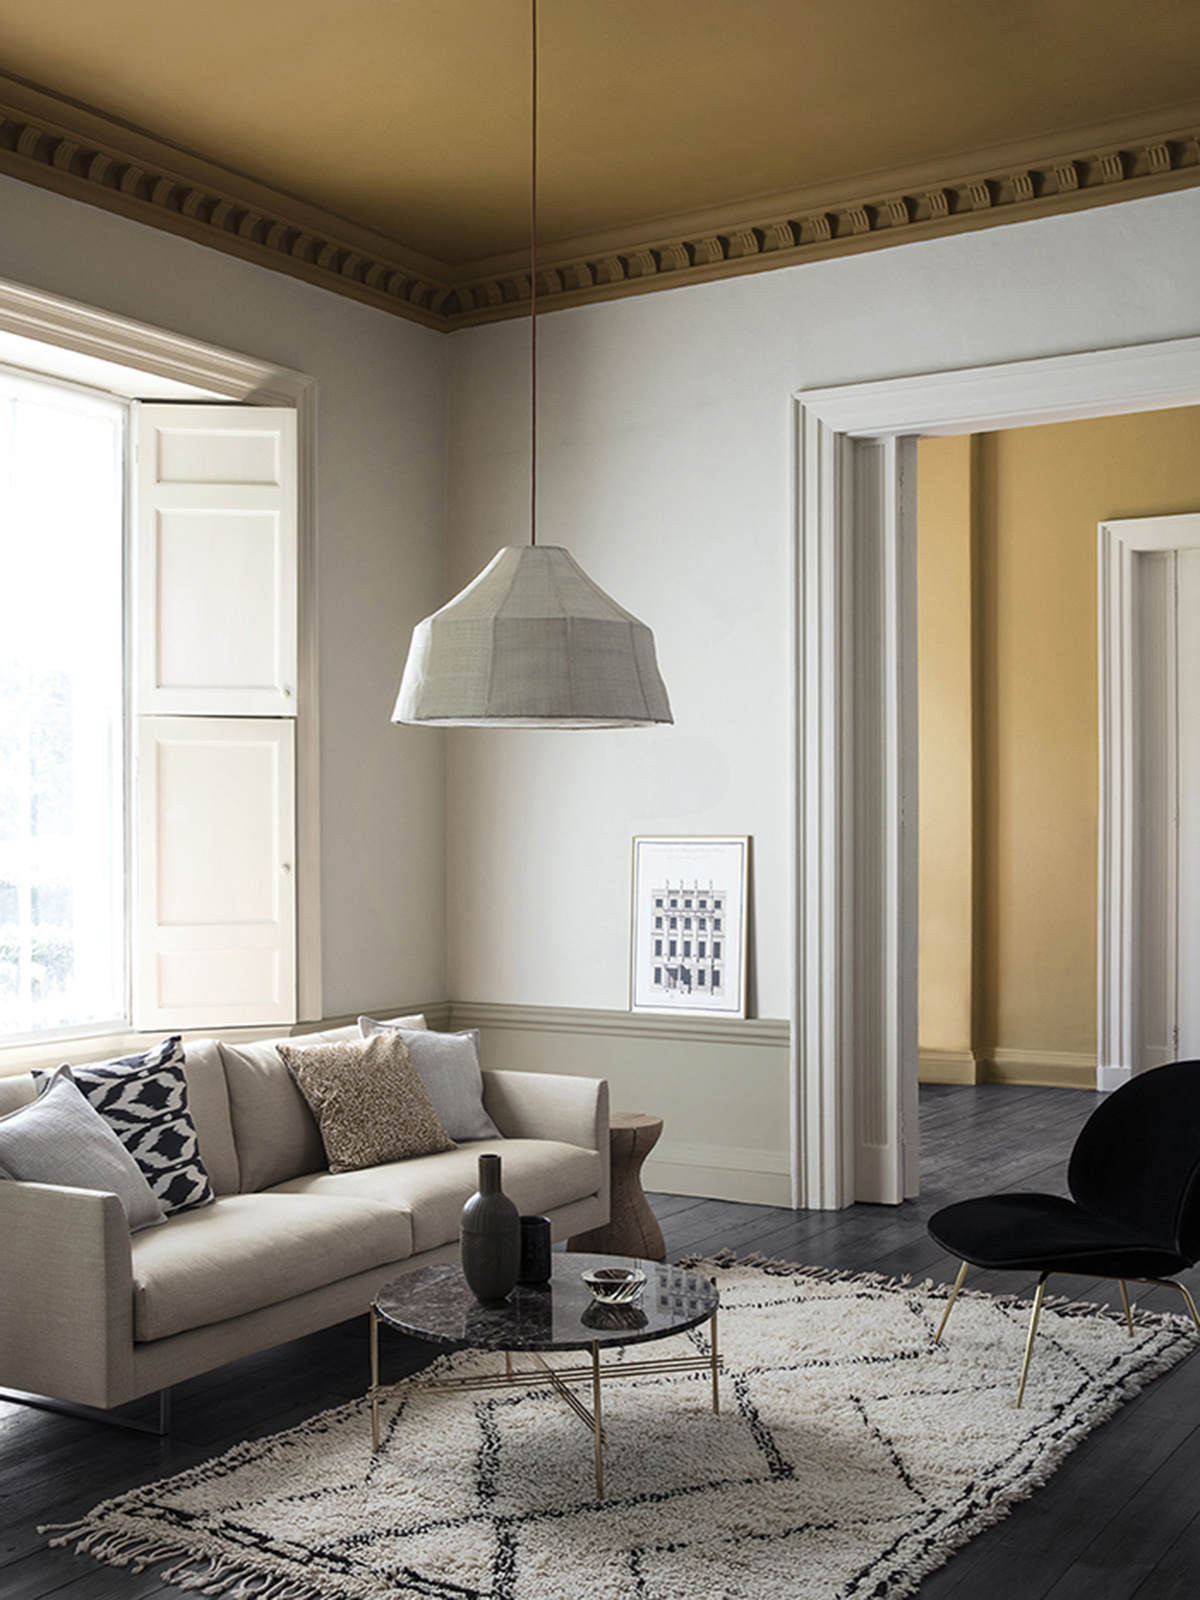 Living Room Color Schemes 2020  INTERIOR COLOR TRENDS 2020 Mustard Yellow in interiors and